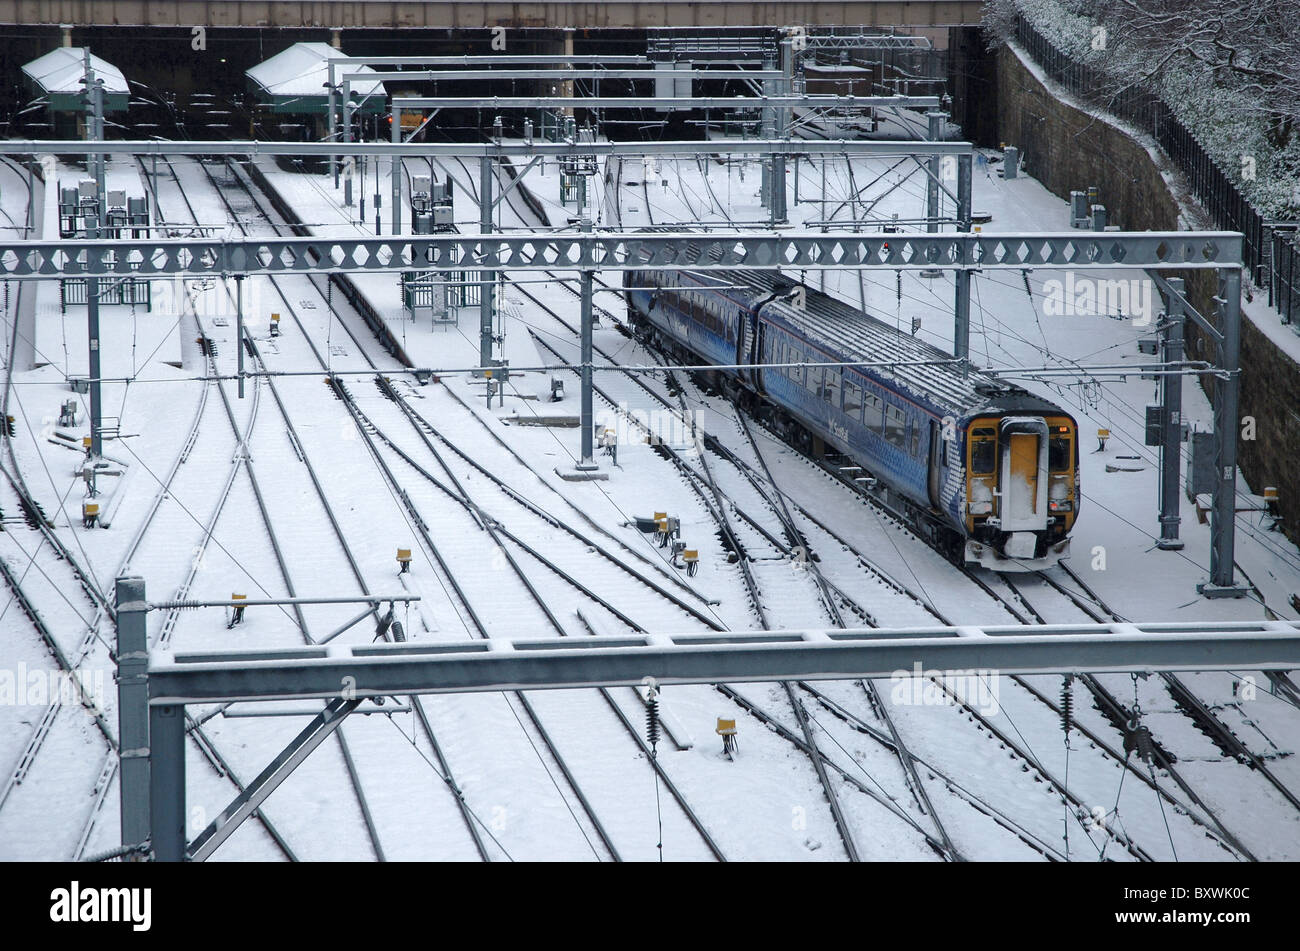 A train pulls in to Waverley Station in Edinburgh after a fall of snow. - Stock Image